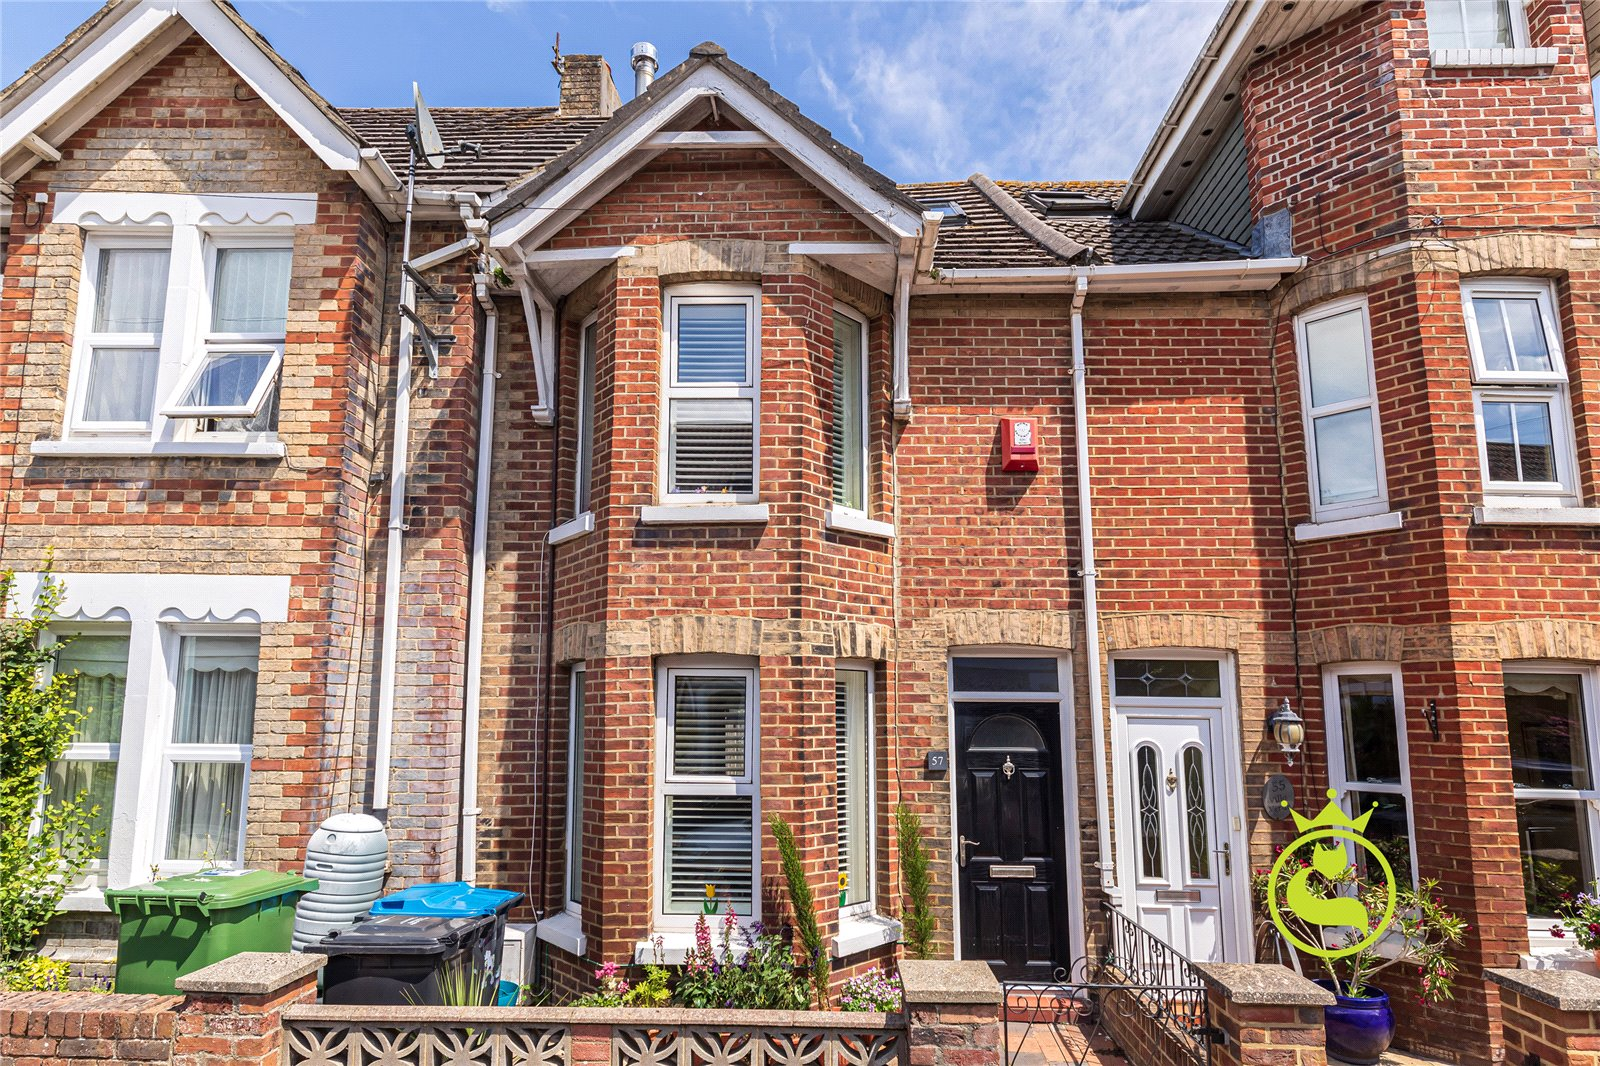 3 bed house for sale in Green Road, Old Town Poole, BH15